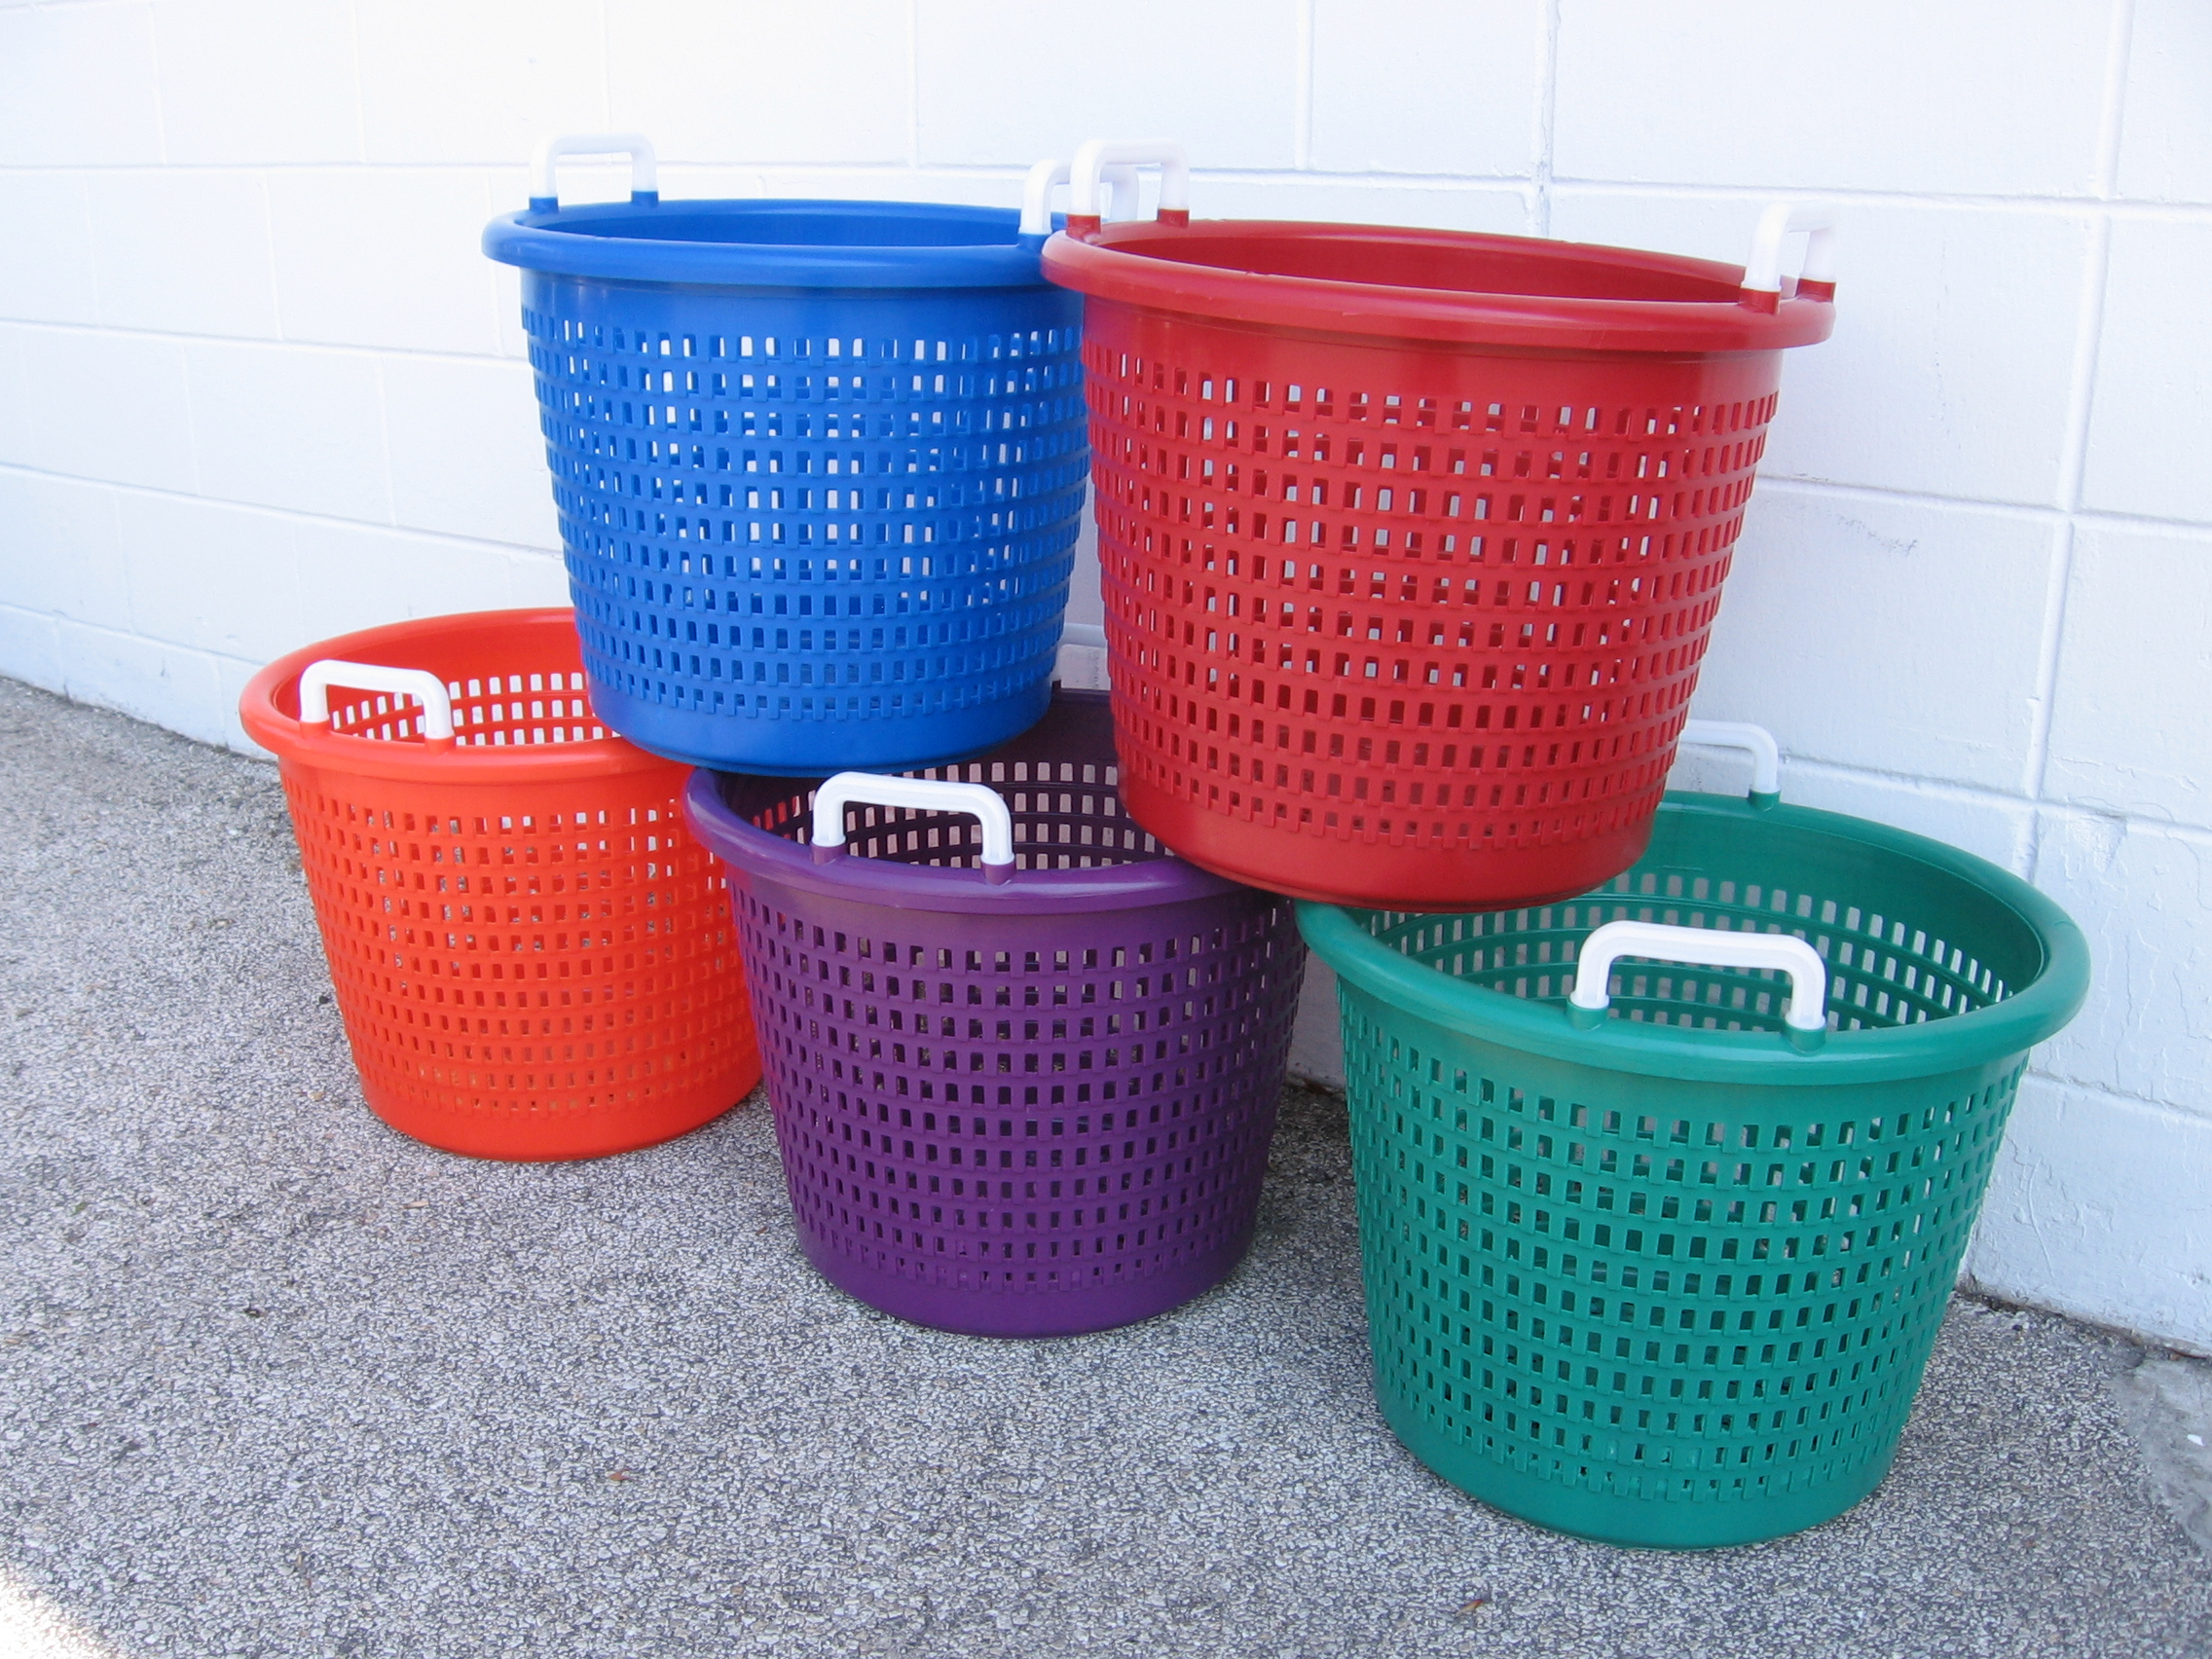 fish baskets, Seafood container, fish bin, tote, commercial fishing, marine, lug, pail, bucket, bin, stackable, nesting, nest, hand held, handheld, factory direct, manufacturer rep, representative, collect, shrimp, all sizes, competitive prices, hot stamp, dock, custom, large order, truckload, full truck, shipping, ship 'n shore, boxes, durable, tray, Ropak, drop ship